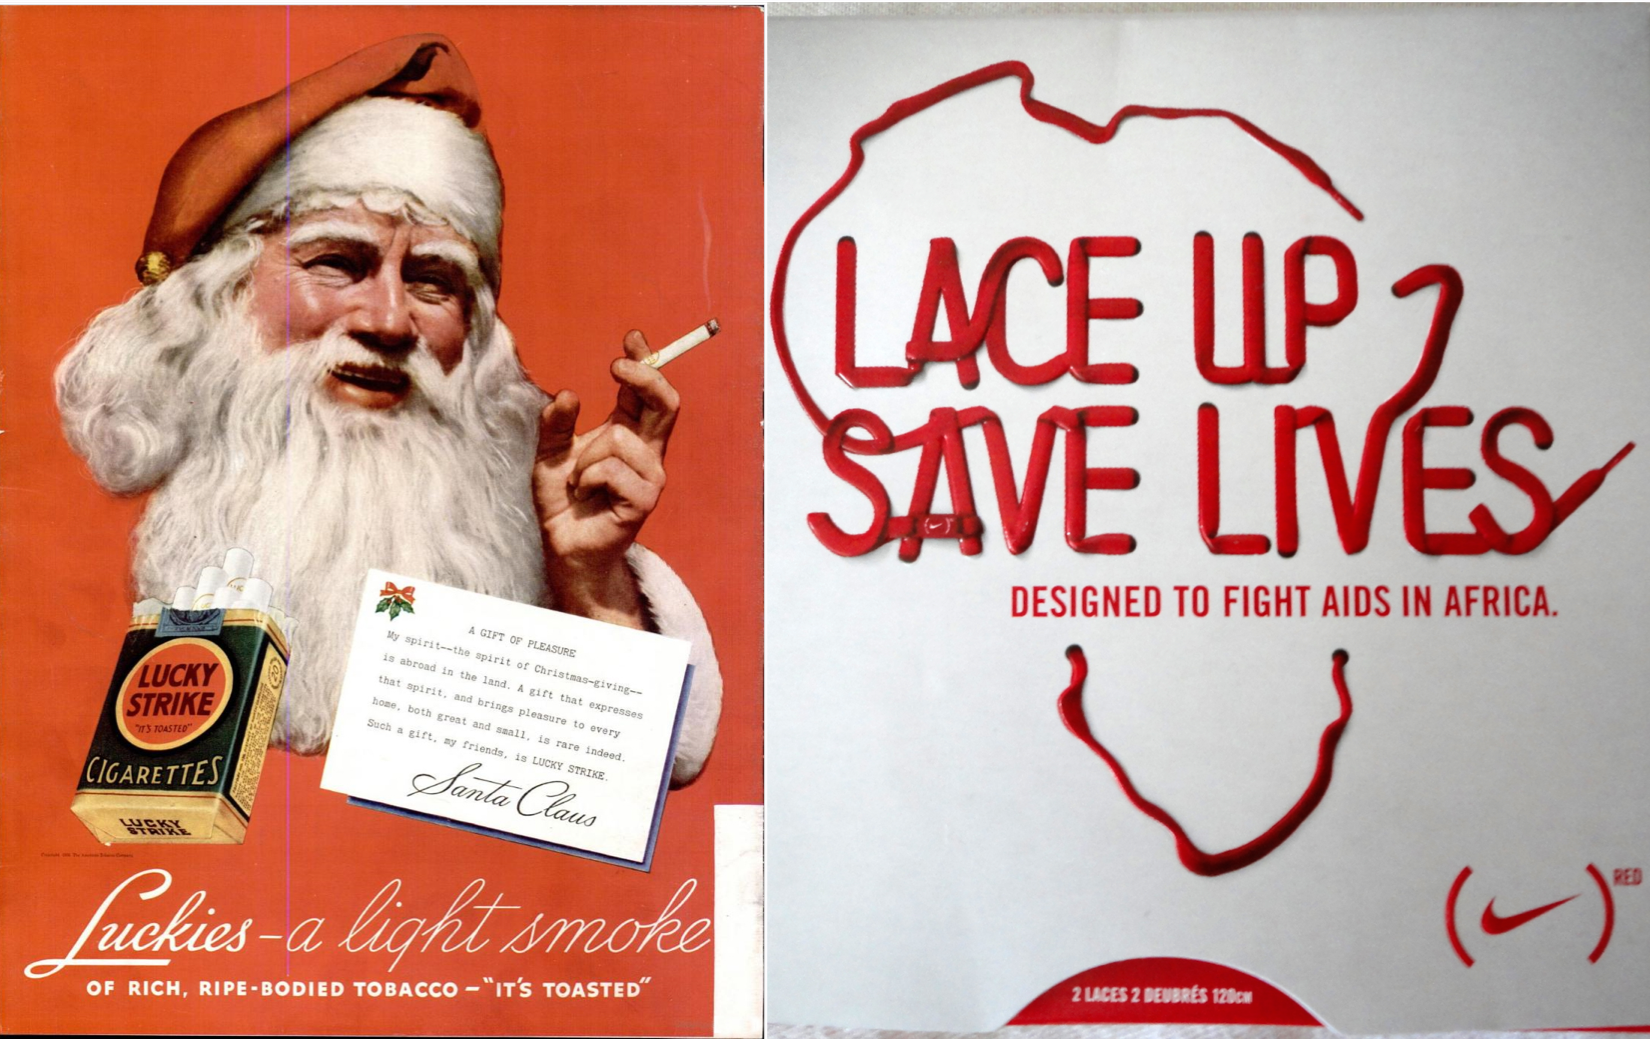 Left: A smiling Santa Claus smokes a cigarette. A card reads, A Gift of Pleasure: My spirit, the Spirit of Christmas-giving, is abroad in the land. A gift that expresses that spirit, and brings pleasure to every home, both great and small, is rare indeed. Such a gift, my friends, is LUCKY STRIKE. Santa Claus. Below Santa are the words Luckies, a light smoke of rich, ripe-bodied tobacco. It's toasted. Right: Some bright red shoelaces are laced through a white background to form a loose silhouette of Africa and the words Lace up Save lives. A caption reads Designed to fight AIDS in Africa. The Nike logo with the superscript RED is in the bottom corner.